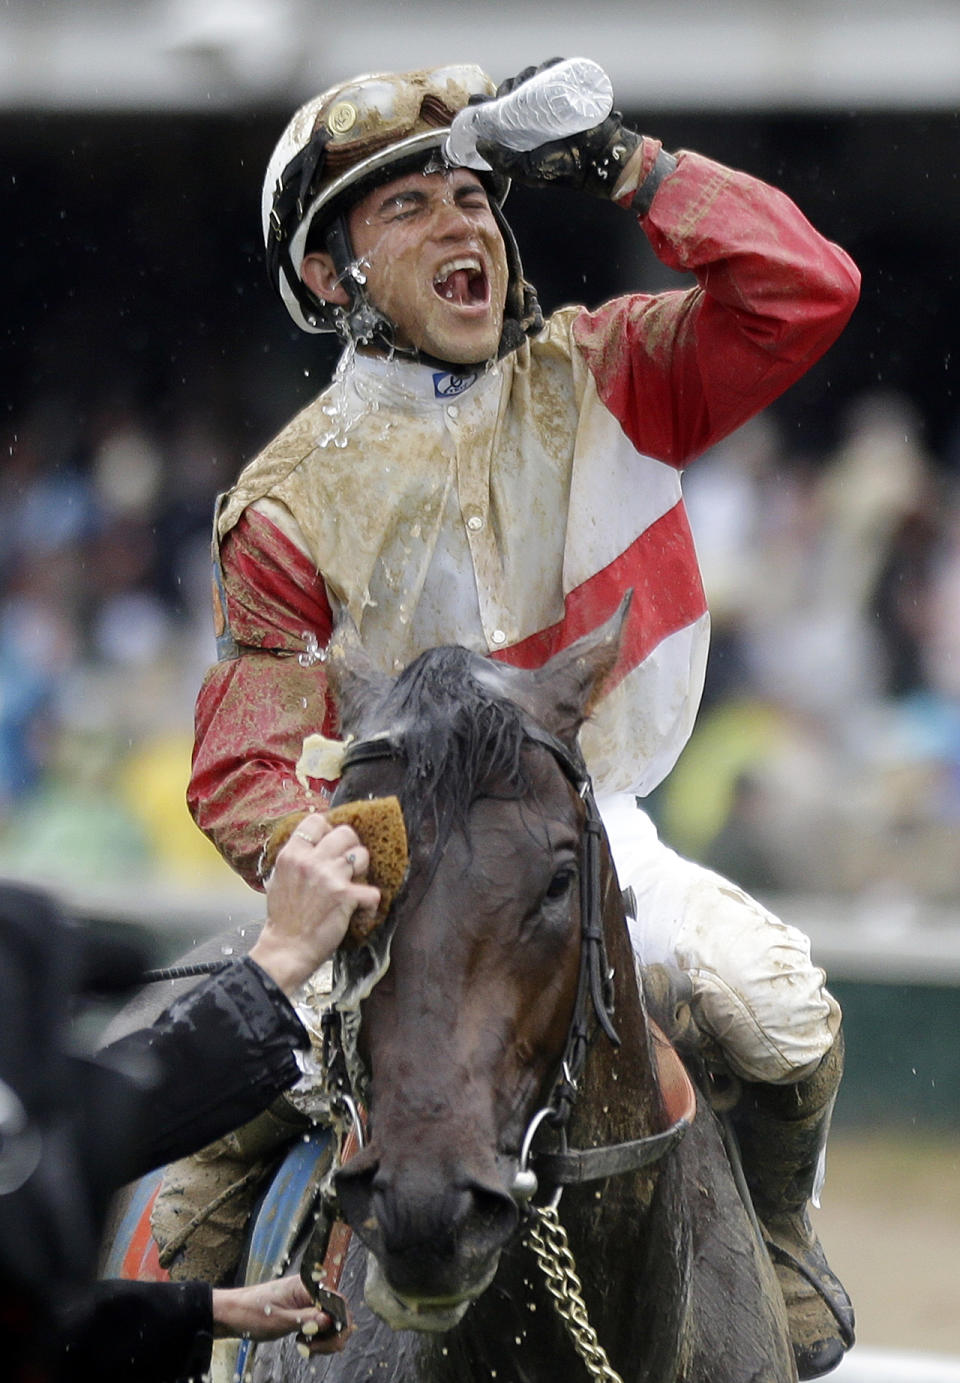 Joel Rosario celebrates after riding Orb to victory in the 139th Kentucky Derby at Churchill Downs Saturday, May 4, 2013, in Louisville, Ky. (AP Photo/David Goldman)